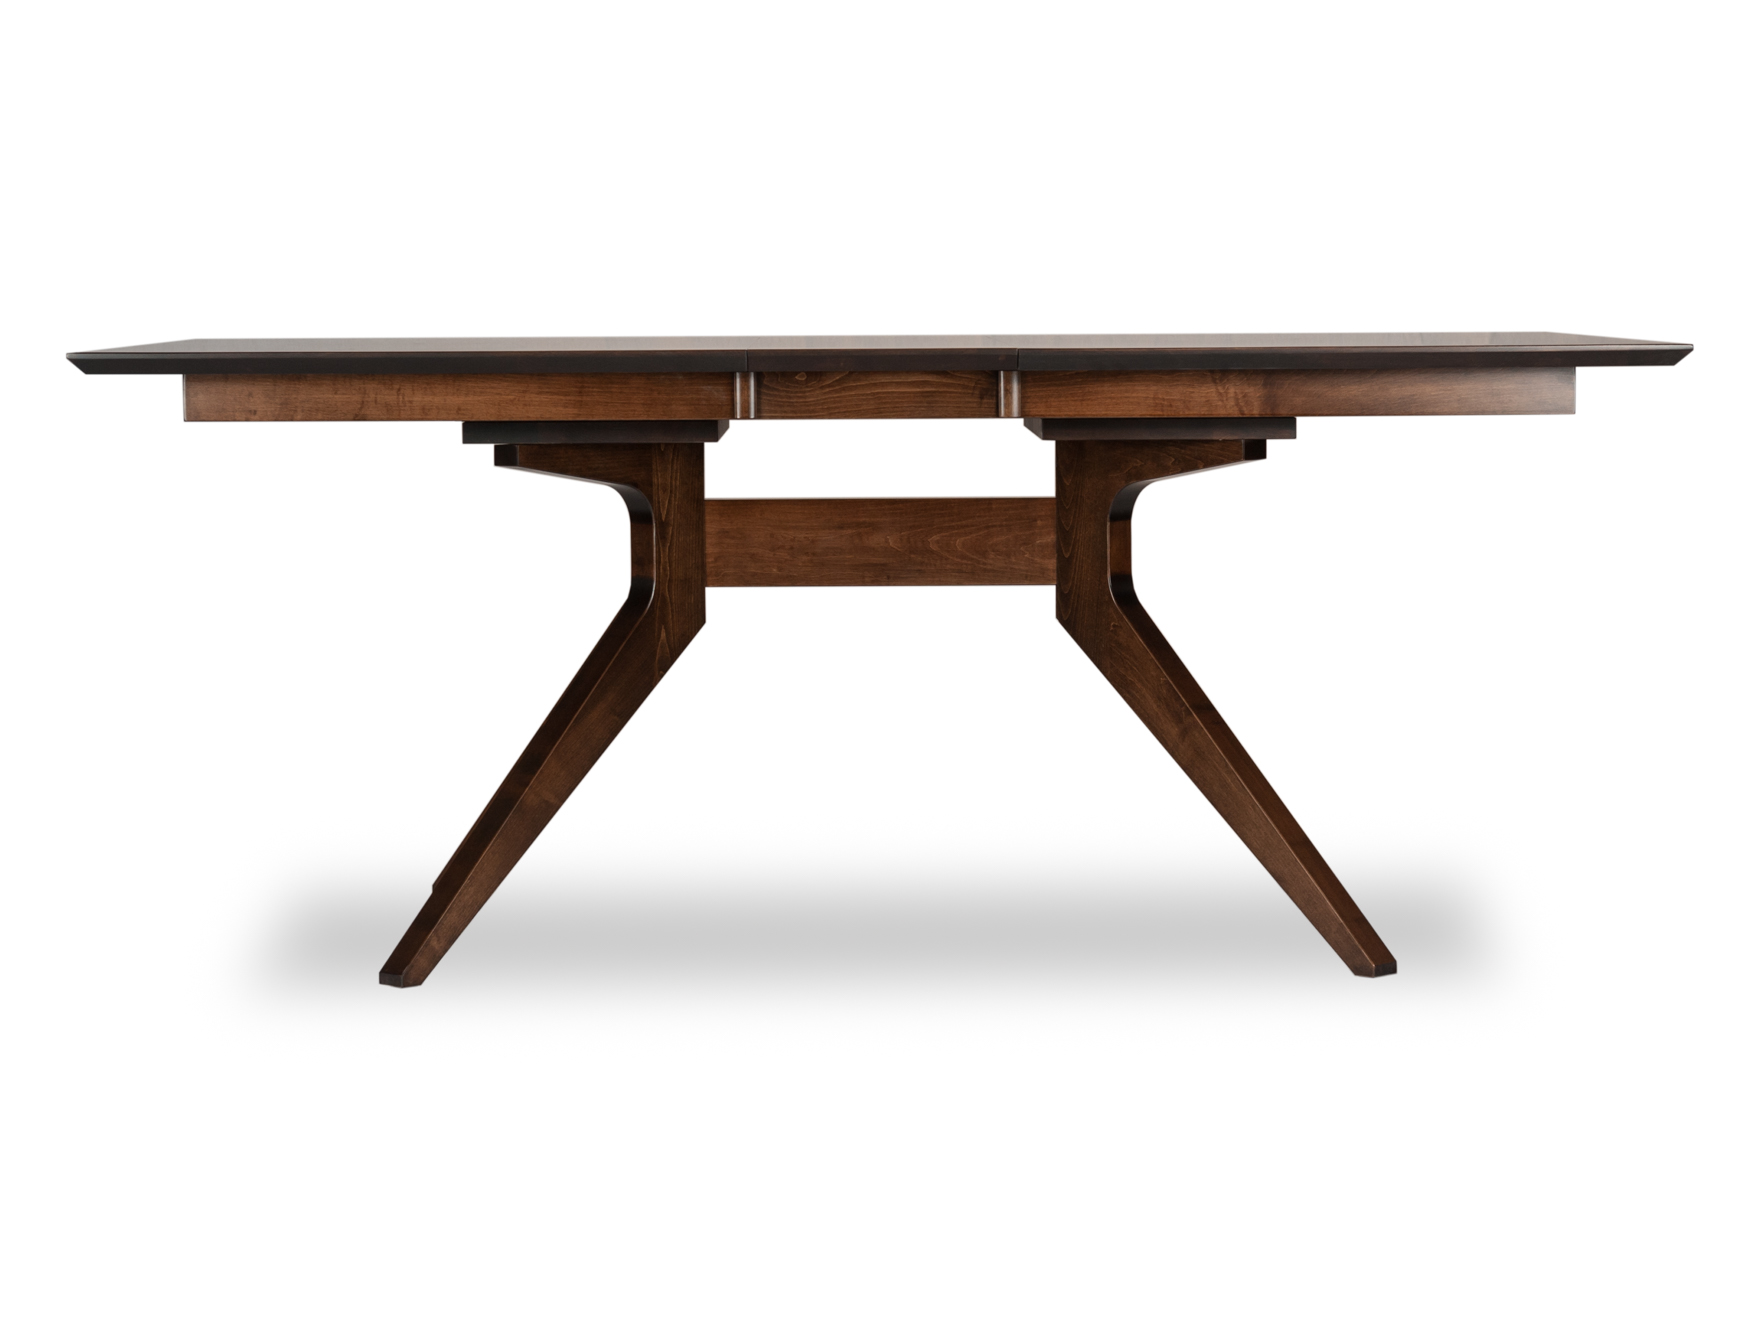 010_Woodcraft_Furniture_MalmoTable_FrtB-1.jpg